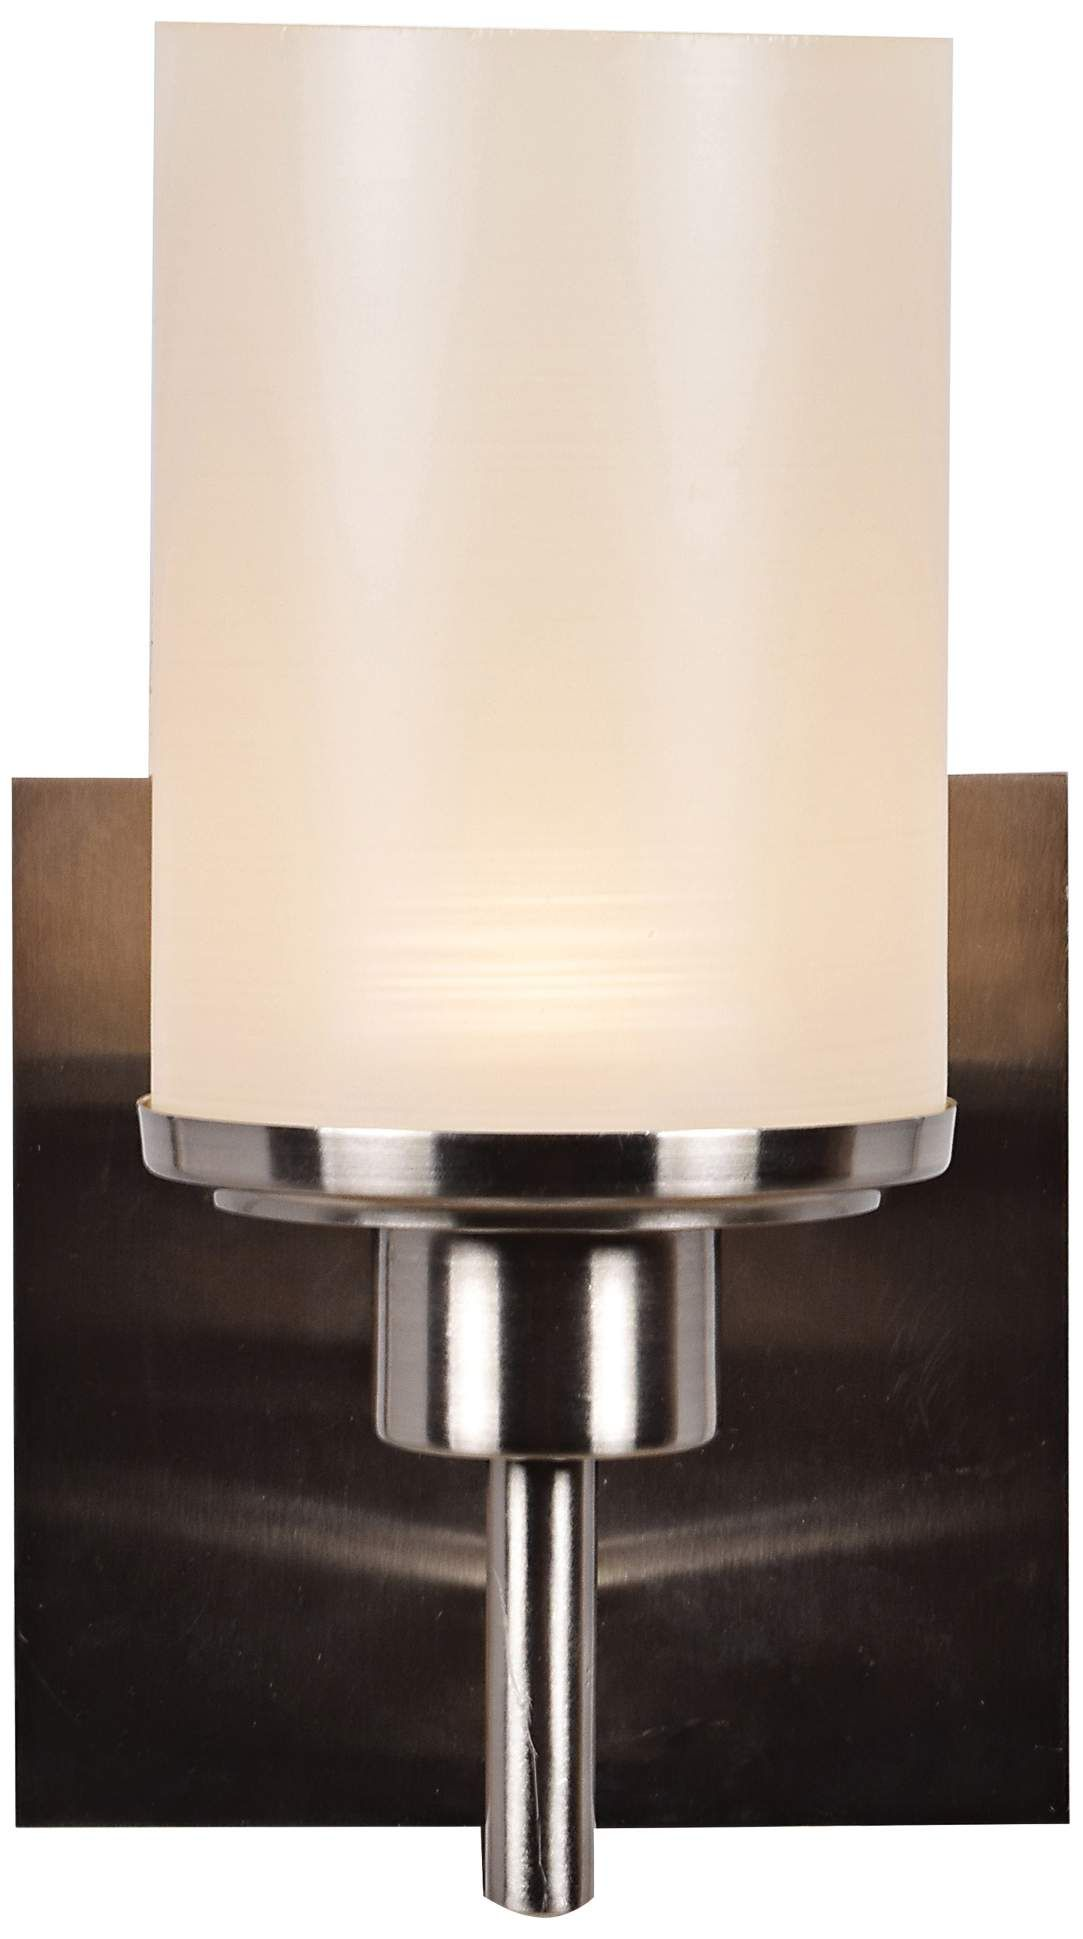 Sconces Perch 9 1 4 High Brushed Steel Led Wall Sconce Led Wall Sconce Sconces Glass Shades